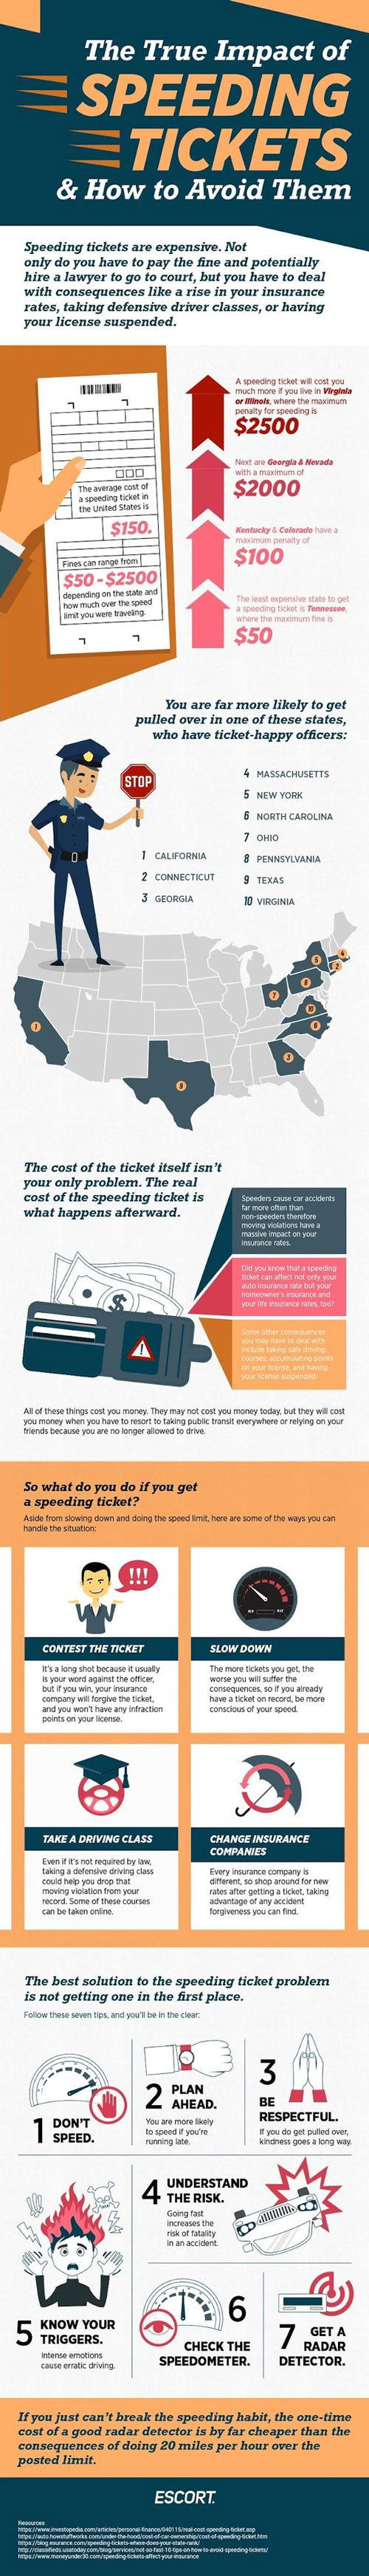 The Impact of Speeding Tickets & How to Avoid Them